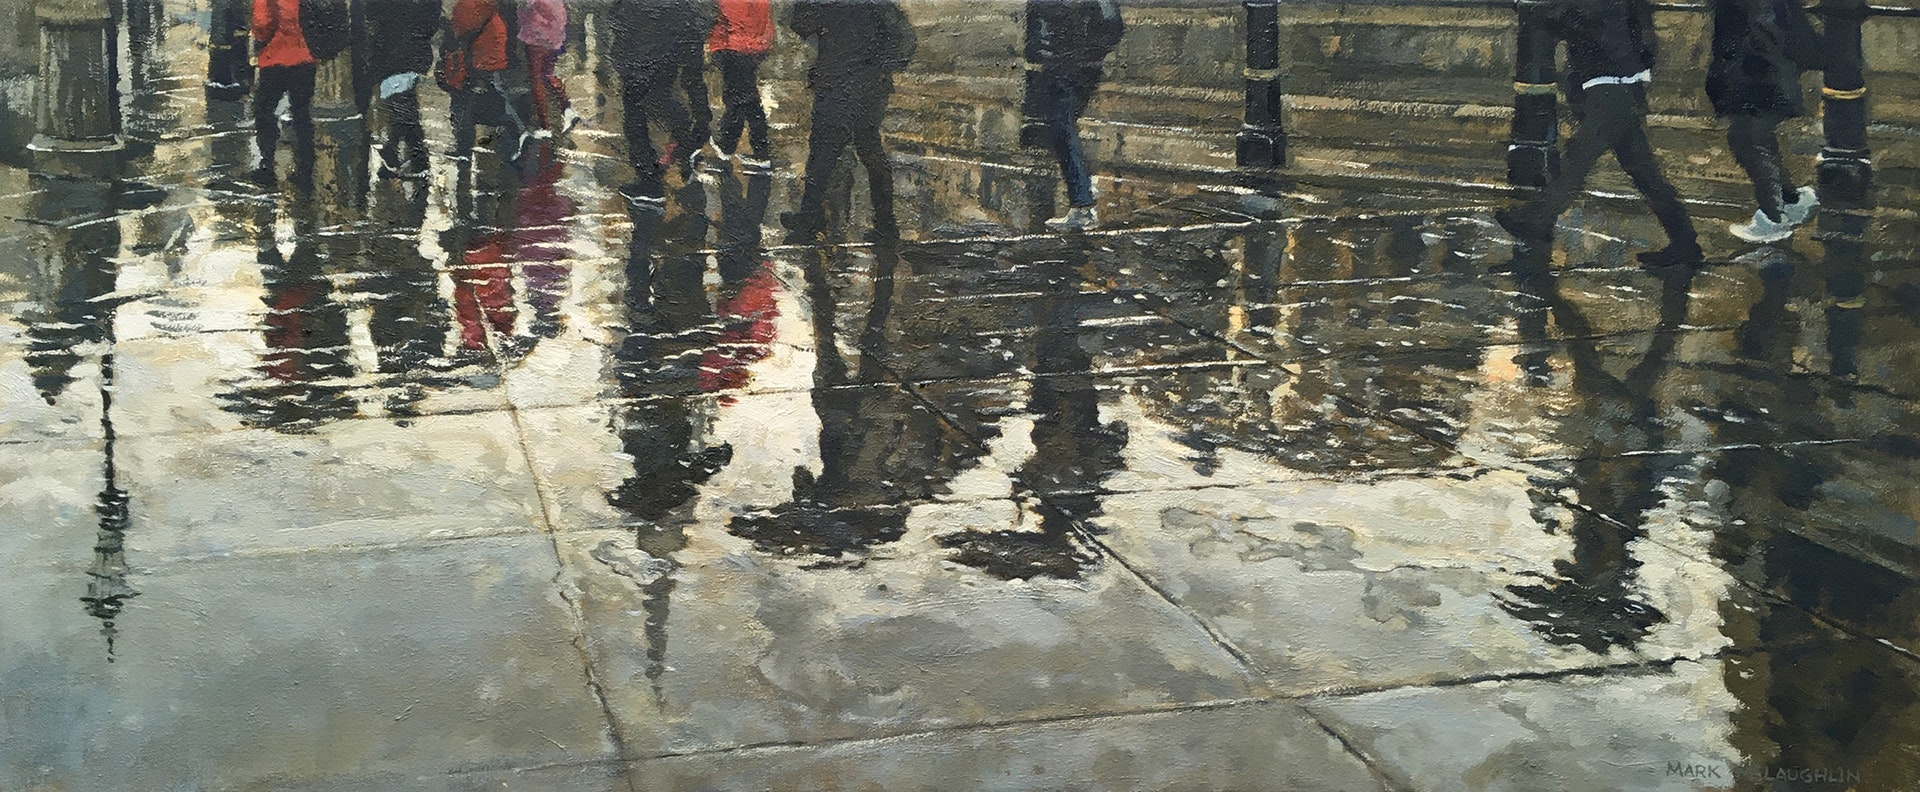 'Rain and reflections, Trafalger Square', Mark McLaughlin, Oil on canvas, 25 x 76 cm